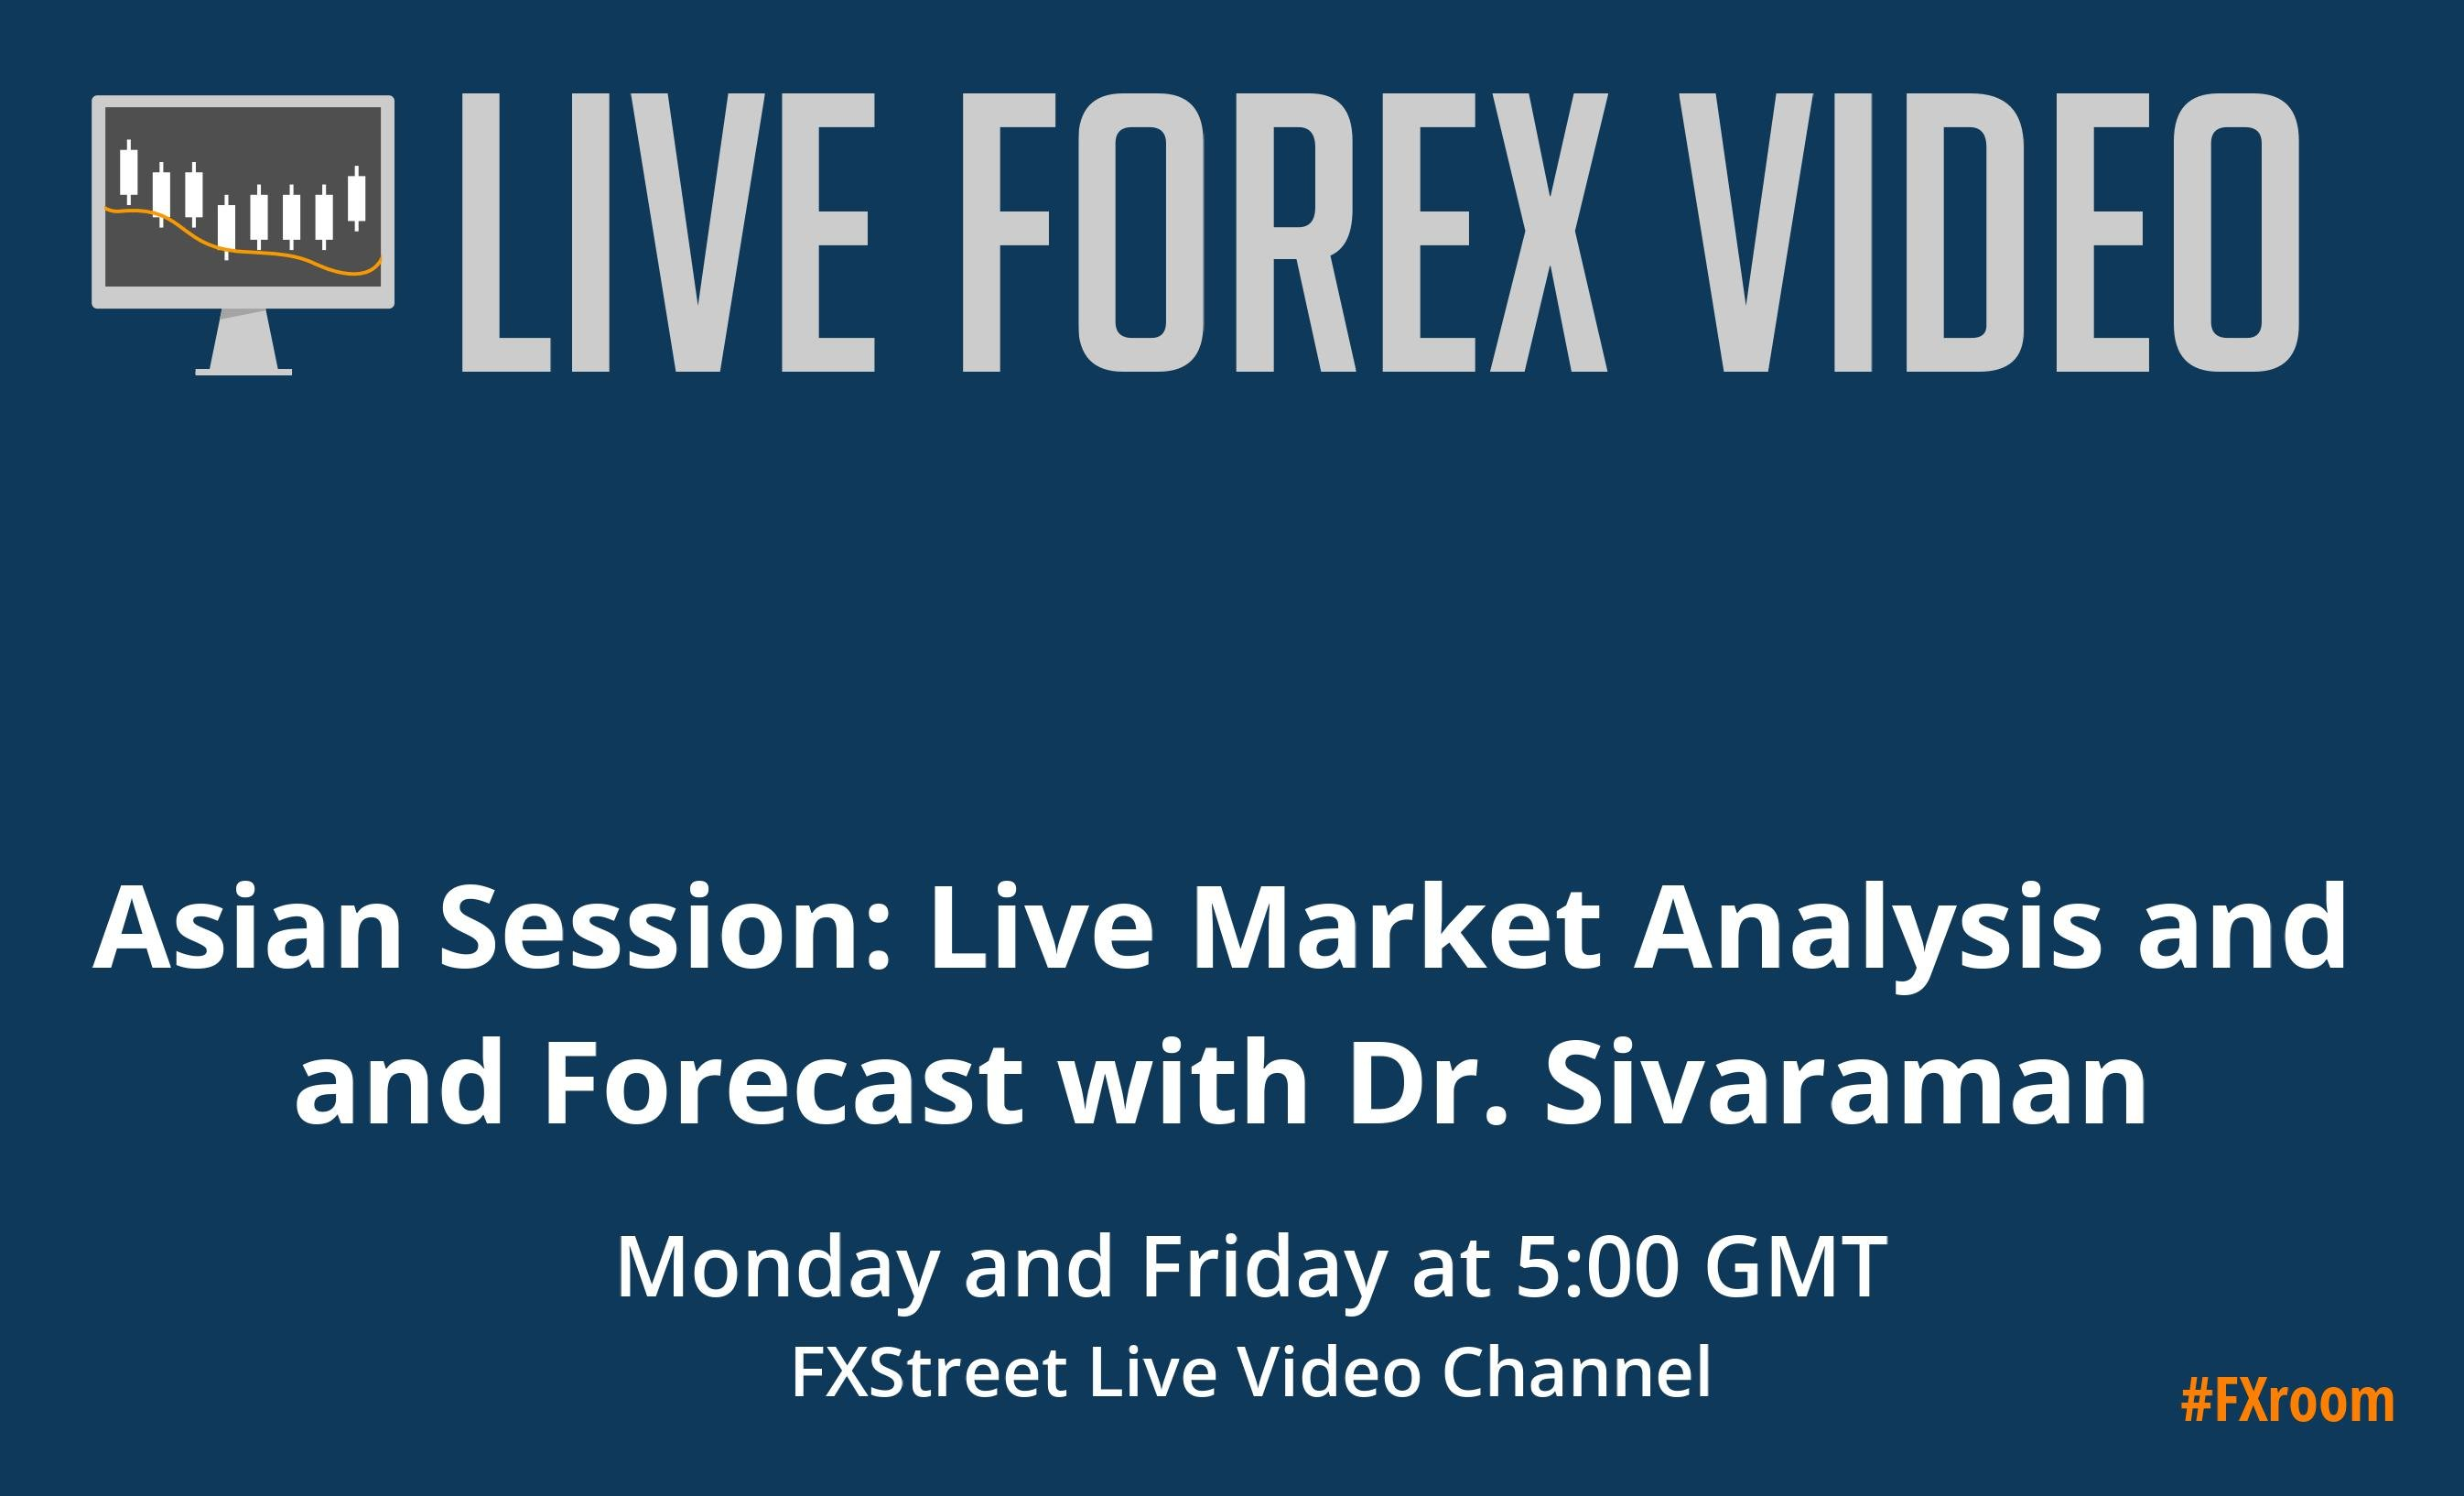 Asia Live Analysis and Forecast with Dr. Sivaraman